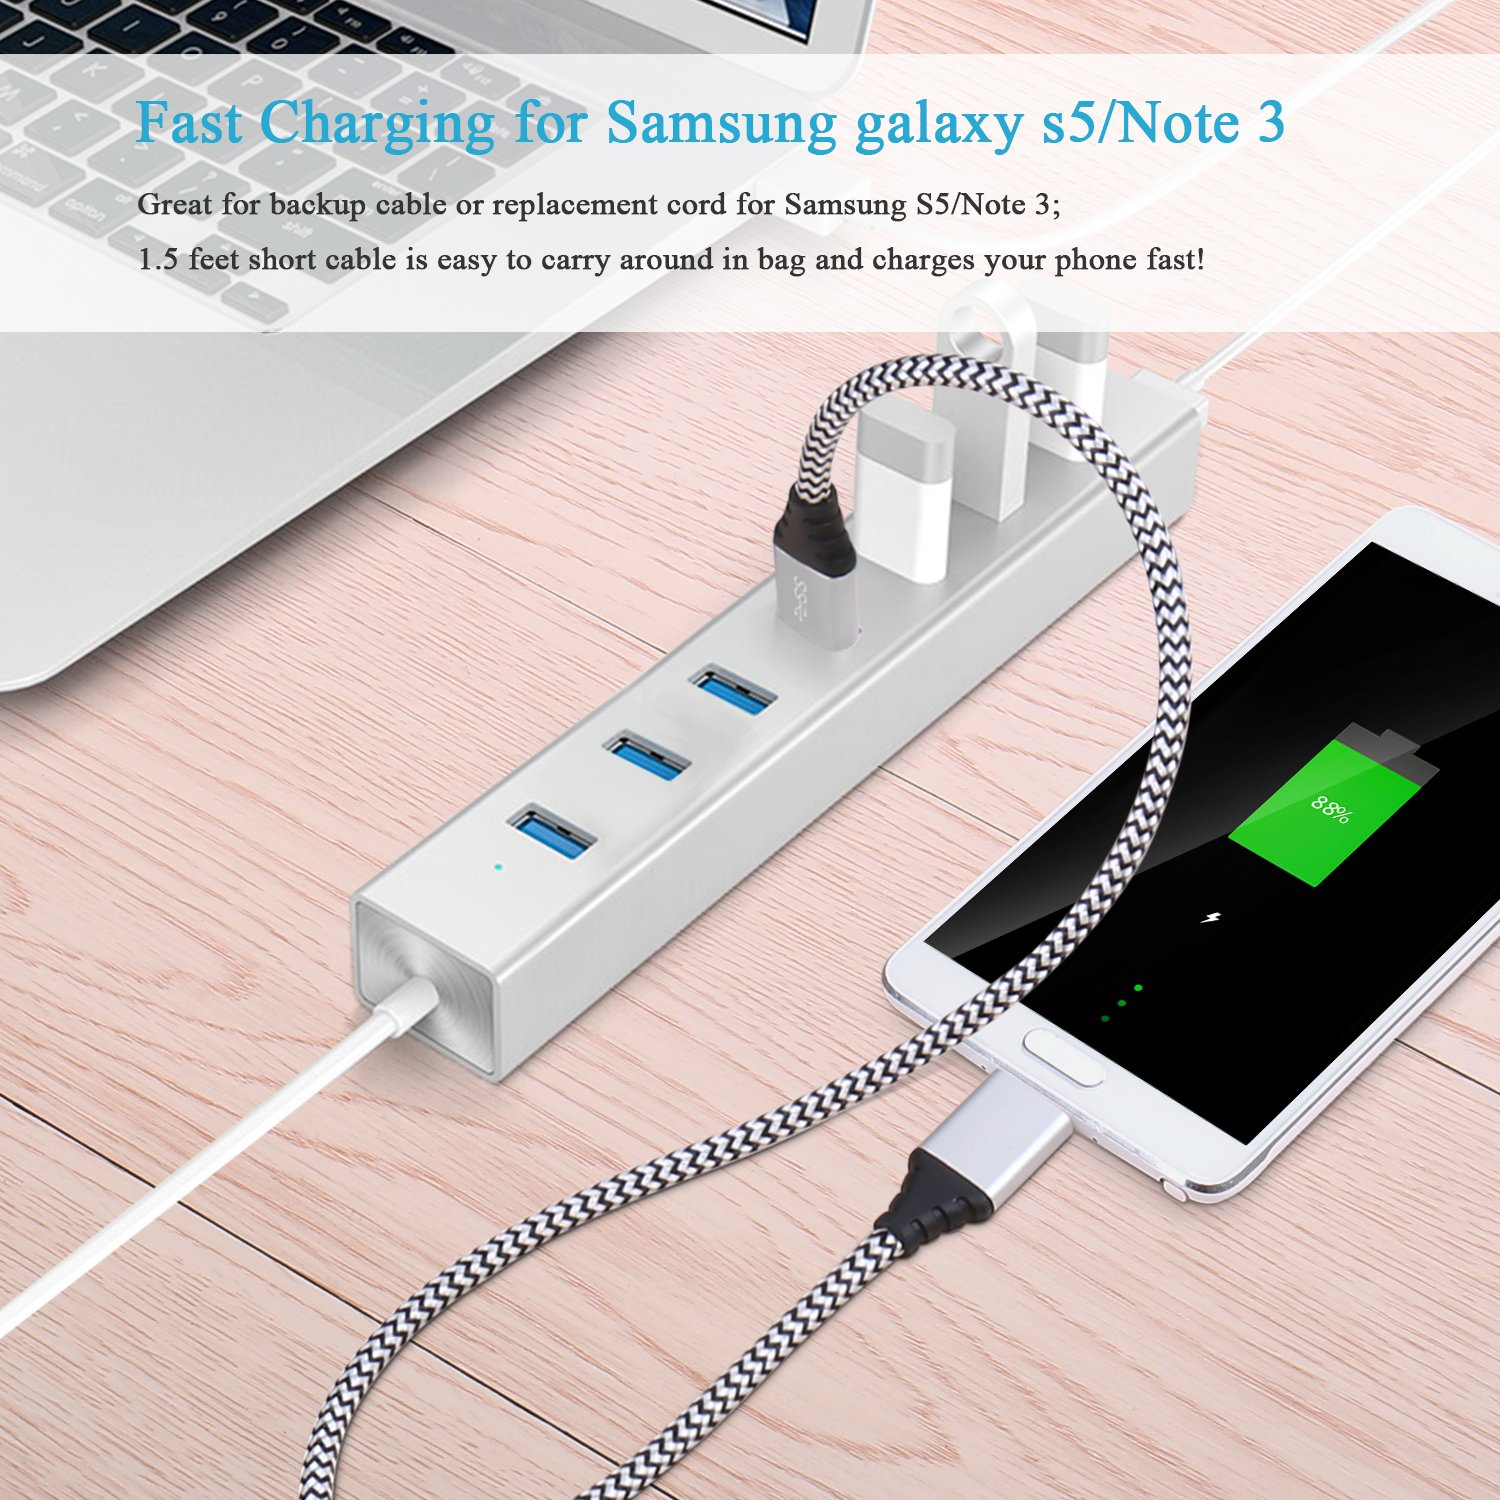 amazon com galaxy s5 charger cable besgoods 2 pack 1 5ft short